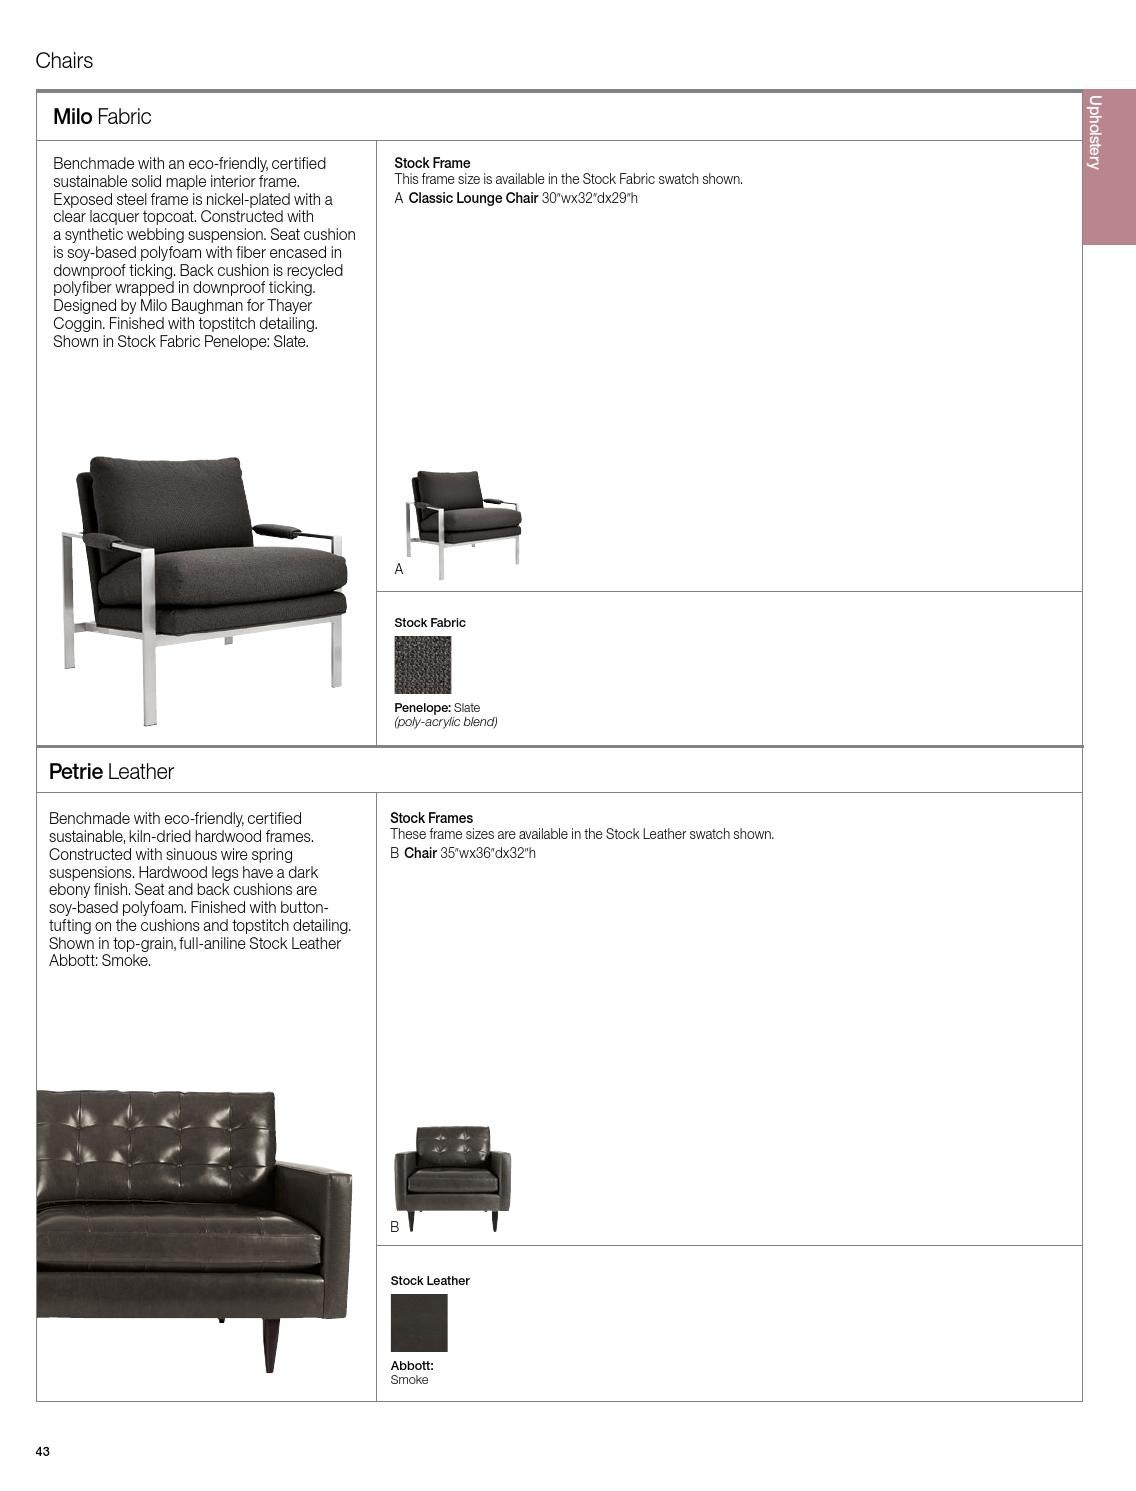 Furniture Resource Guide Spring Summer 2016 by Crate and